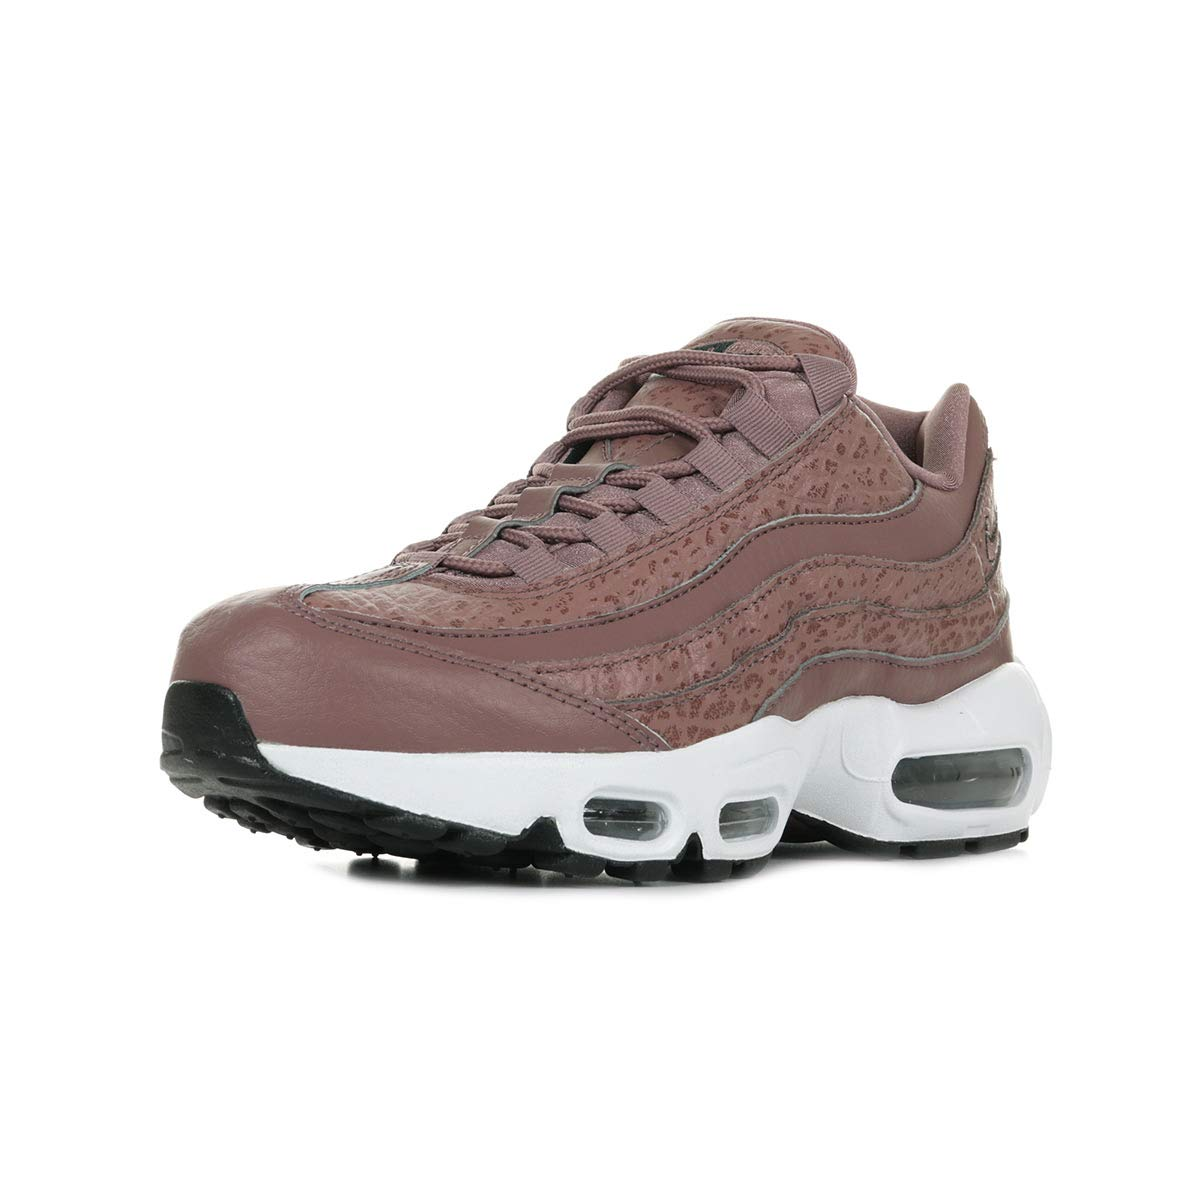 Nike Women's WMNS Air Max 95 Lea Competition Running Shoes